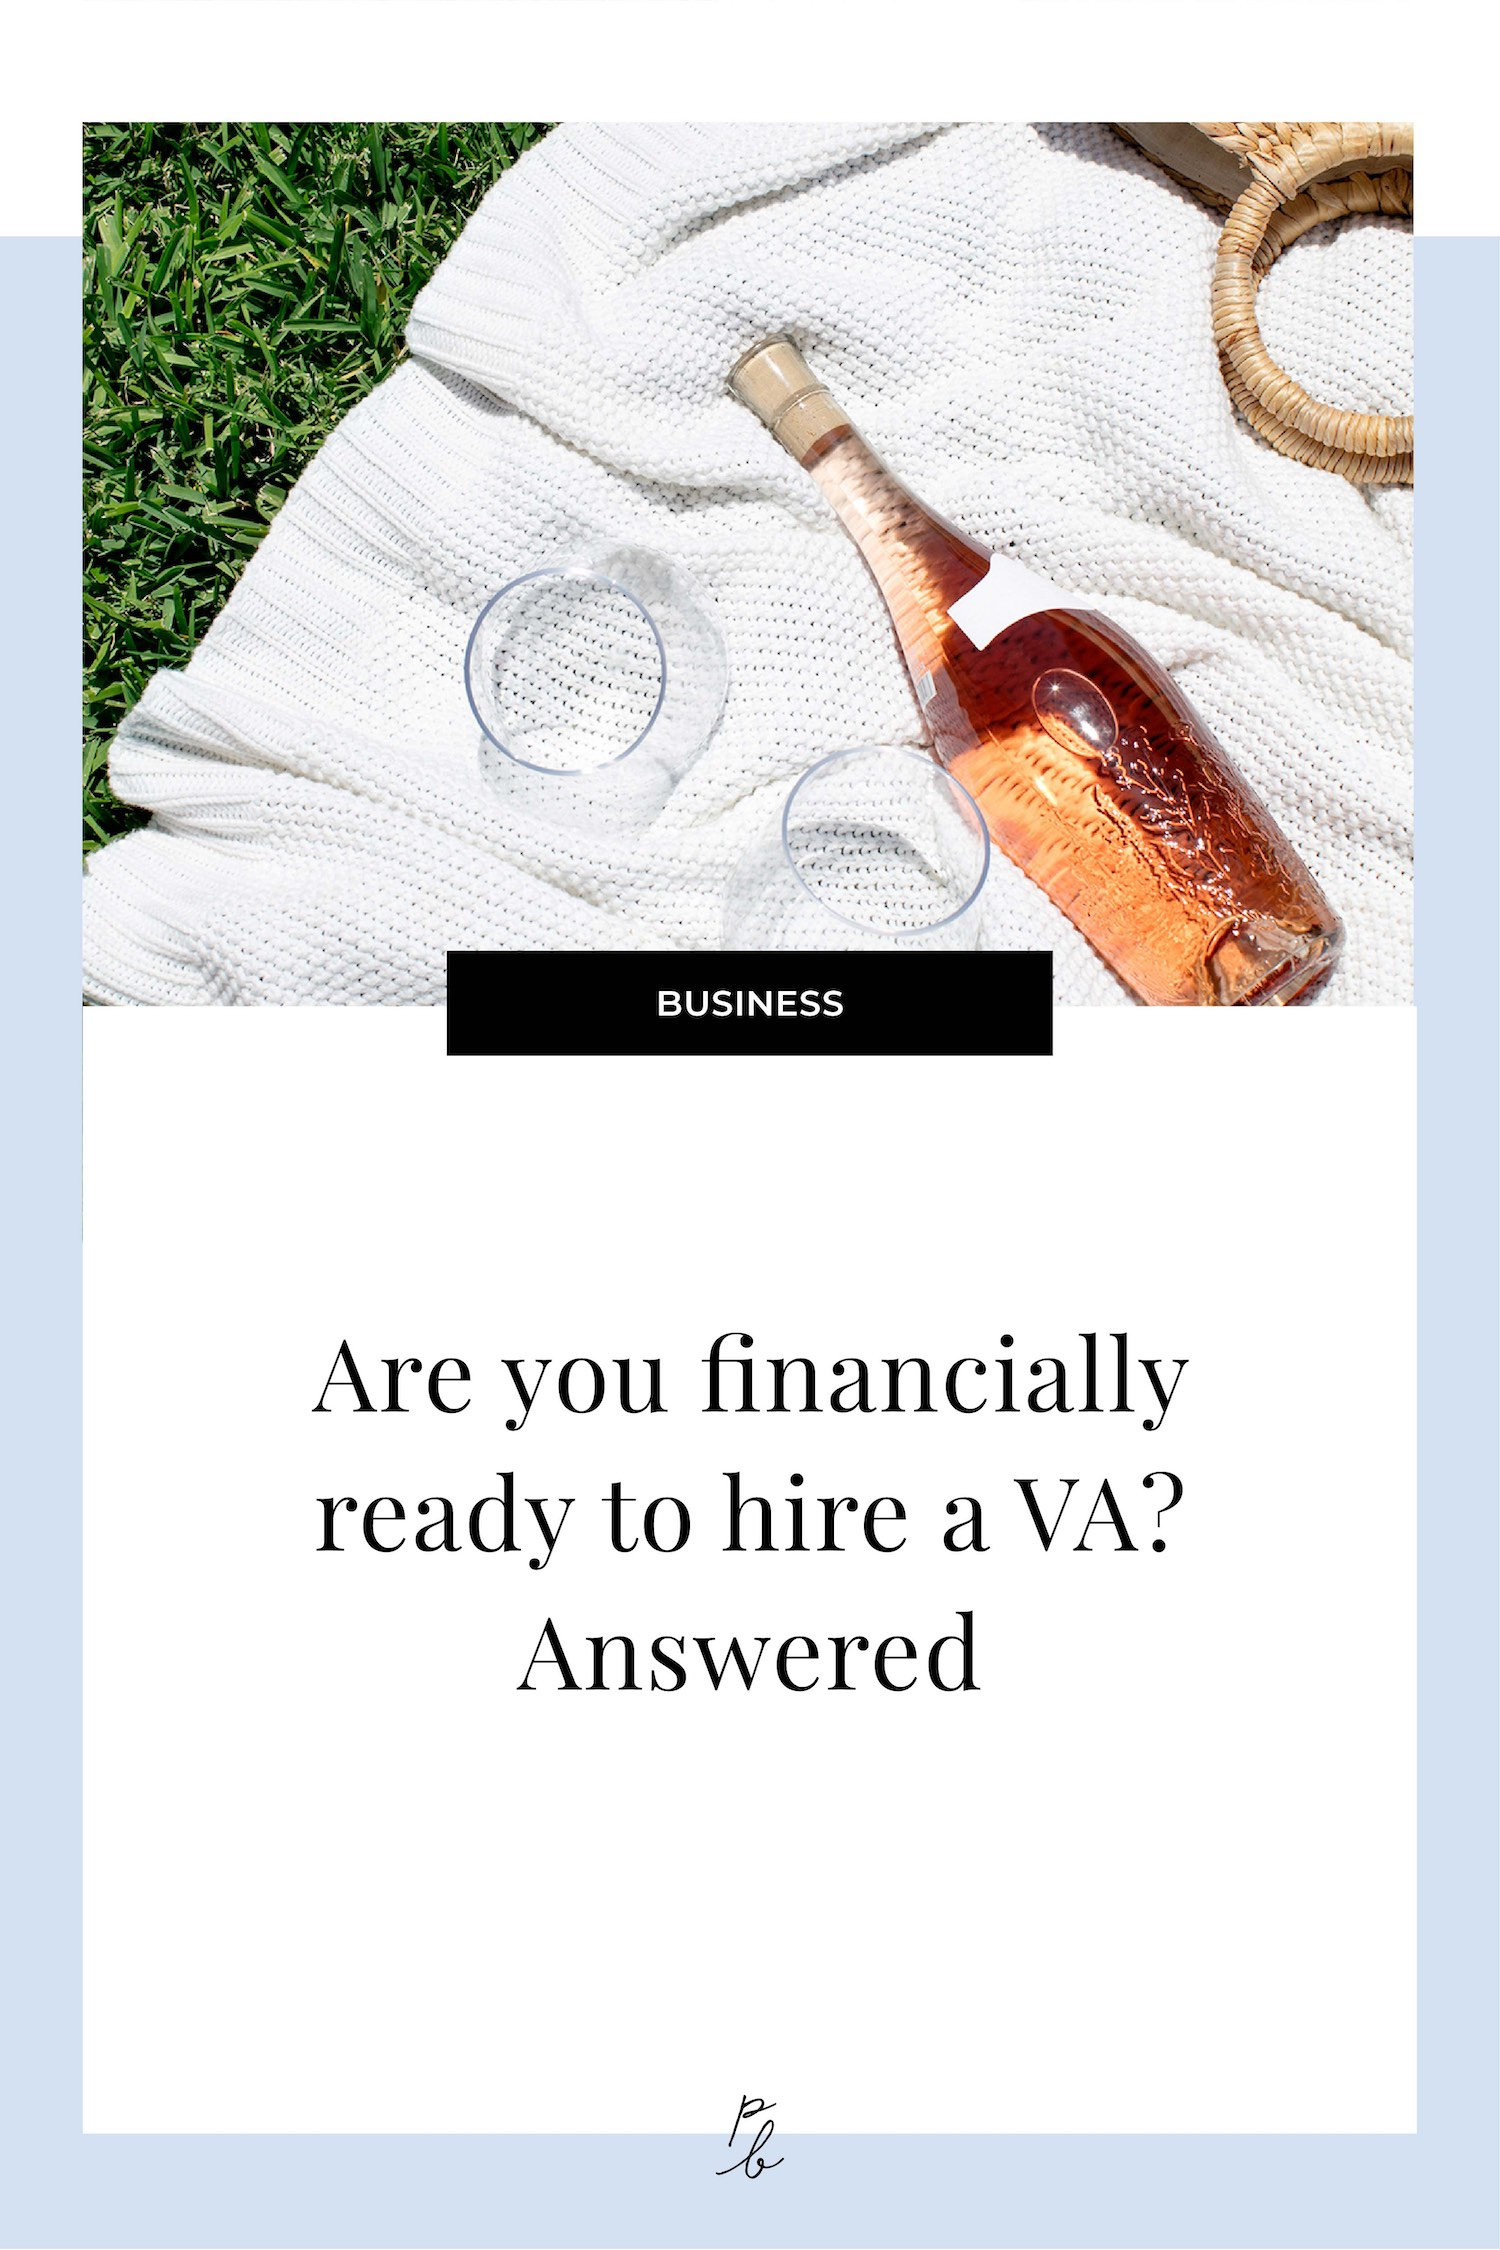 Are you financially ready to hire a VA? Answered.jpg